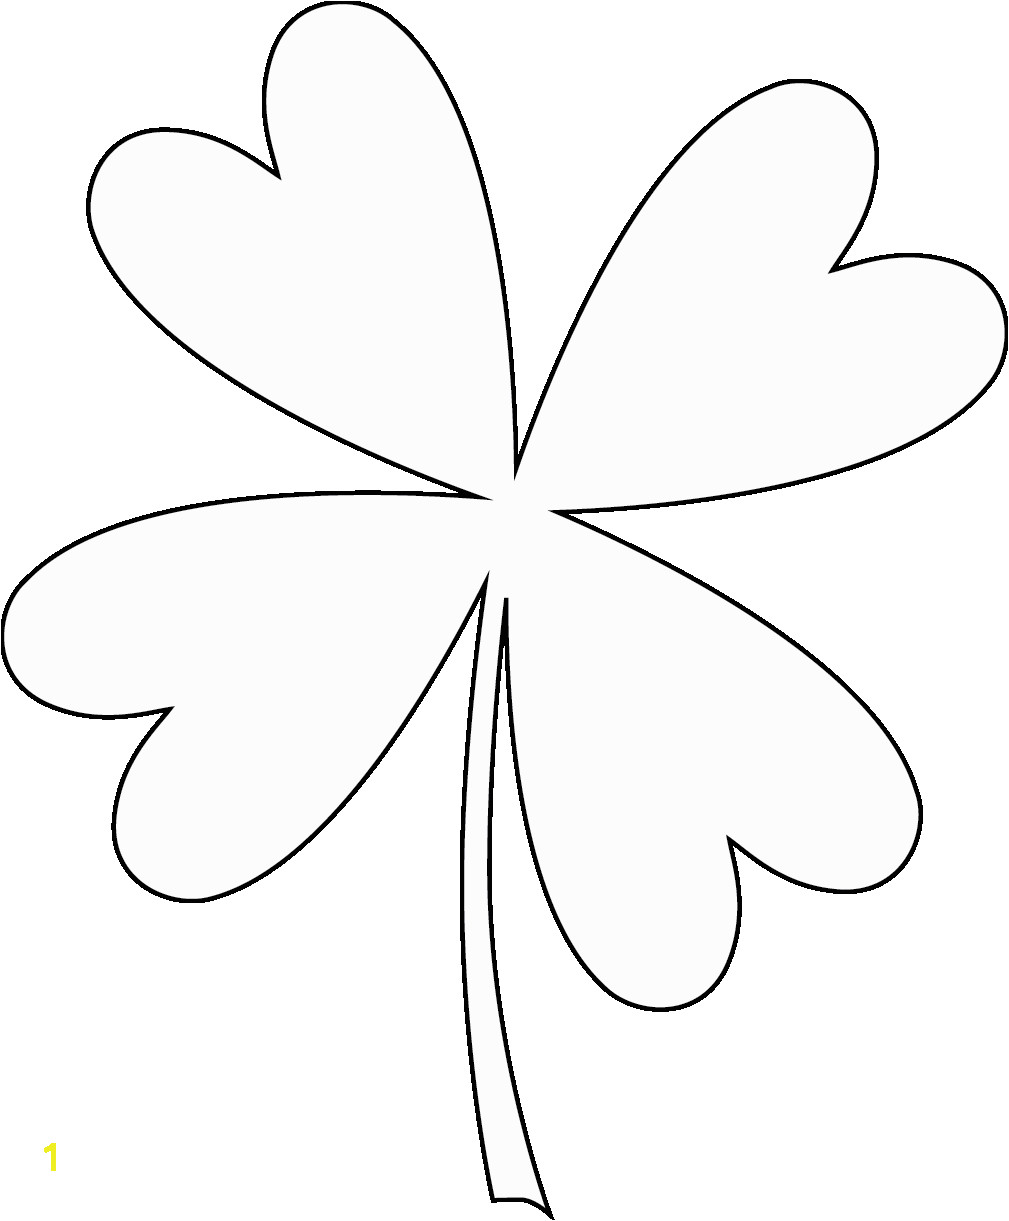 Four Leaf Clover Coloring